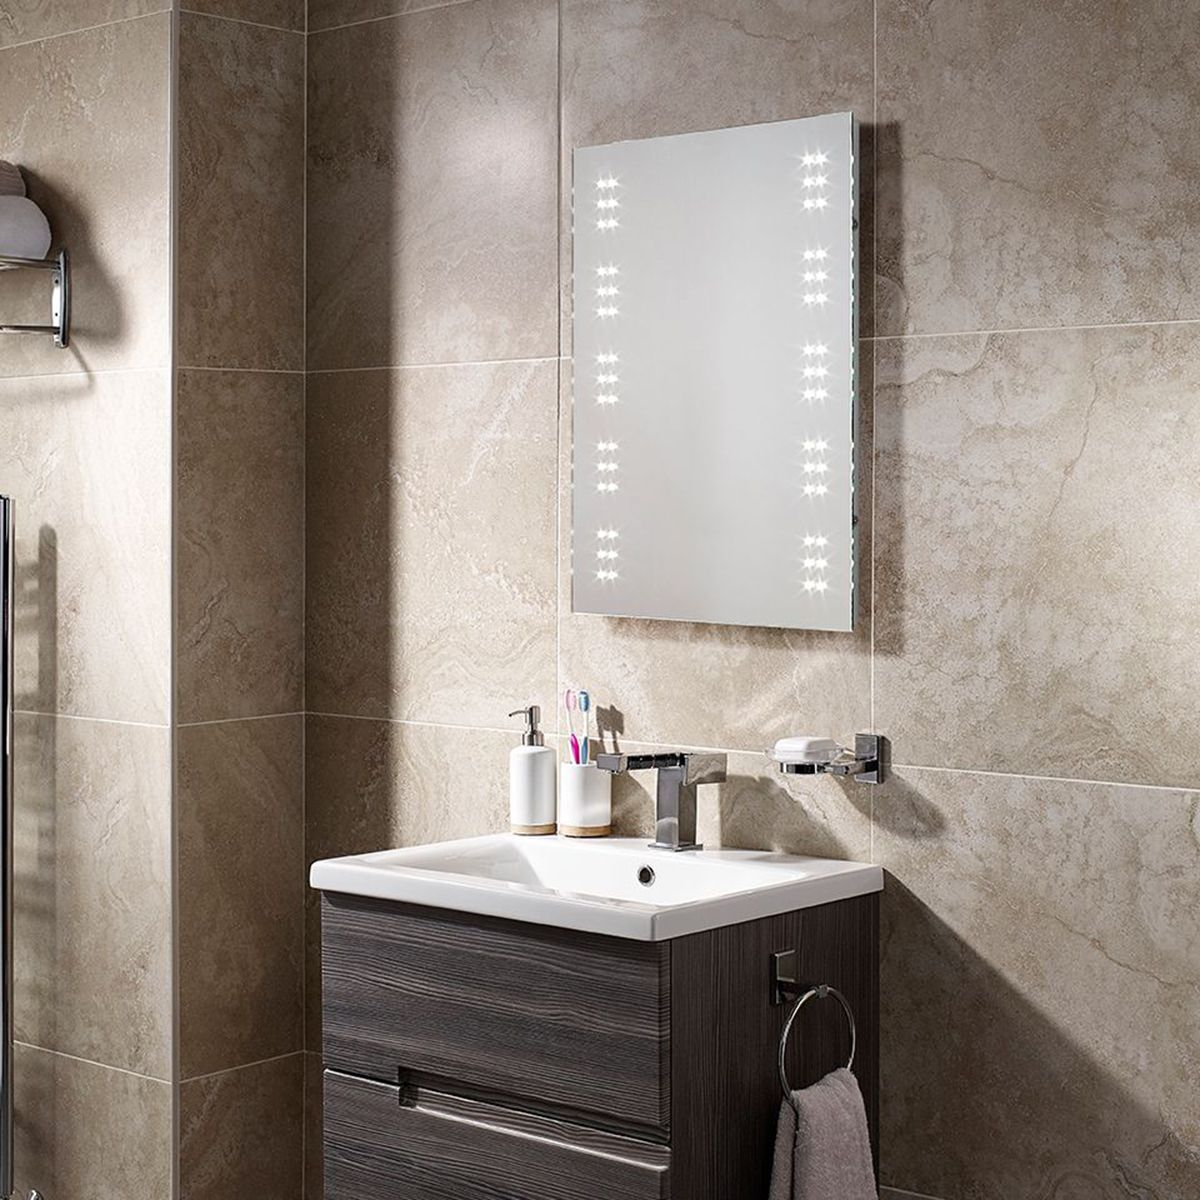 Sensio Ava LED Battery Operated Mirror 700 x 500 x 30 2